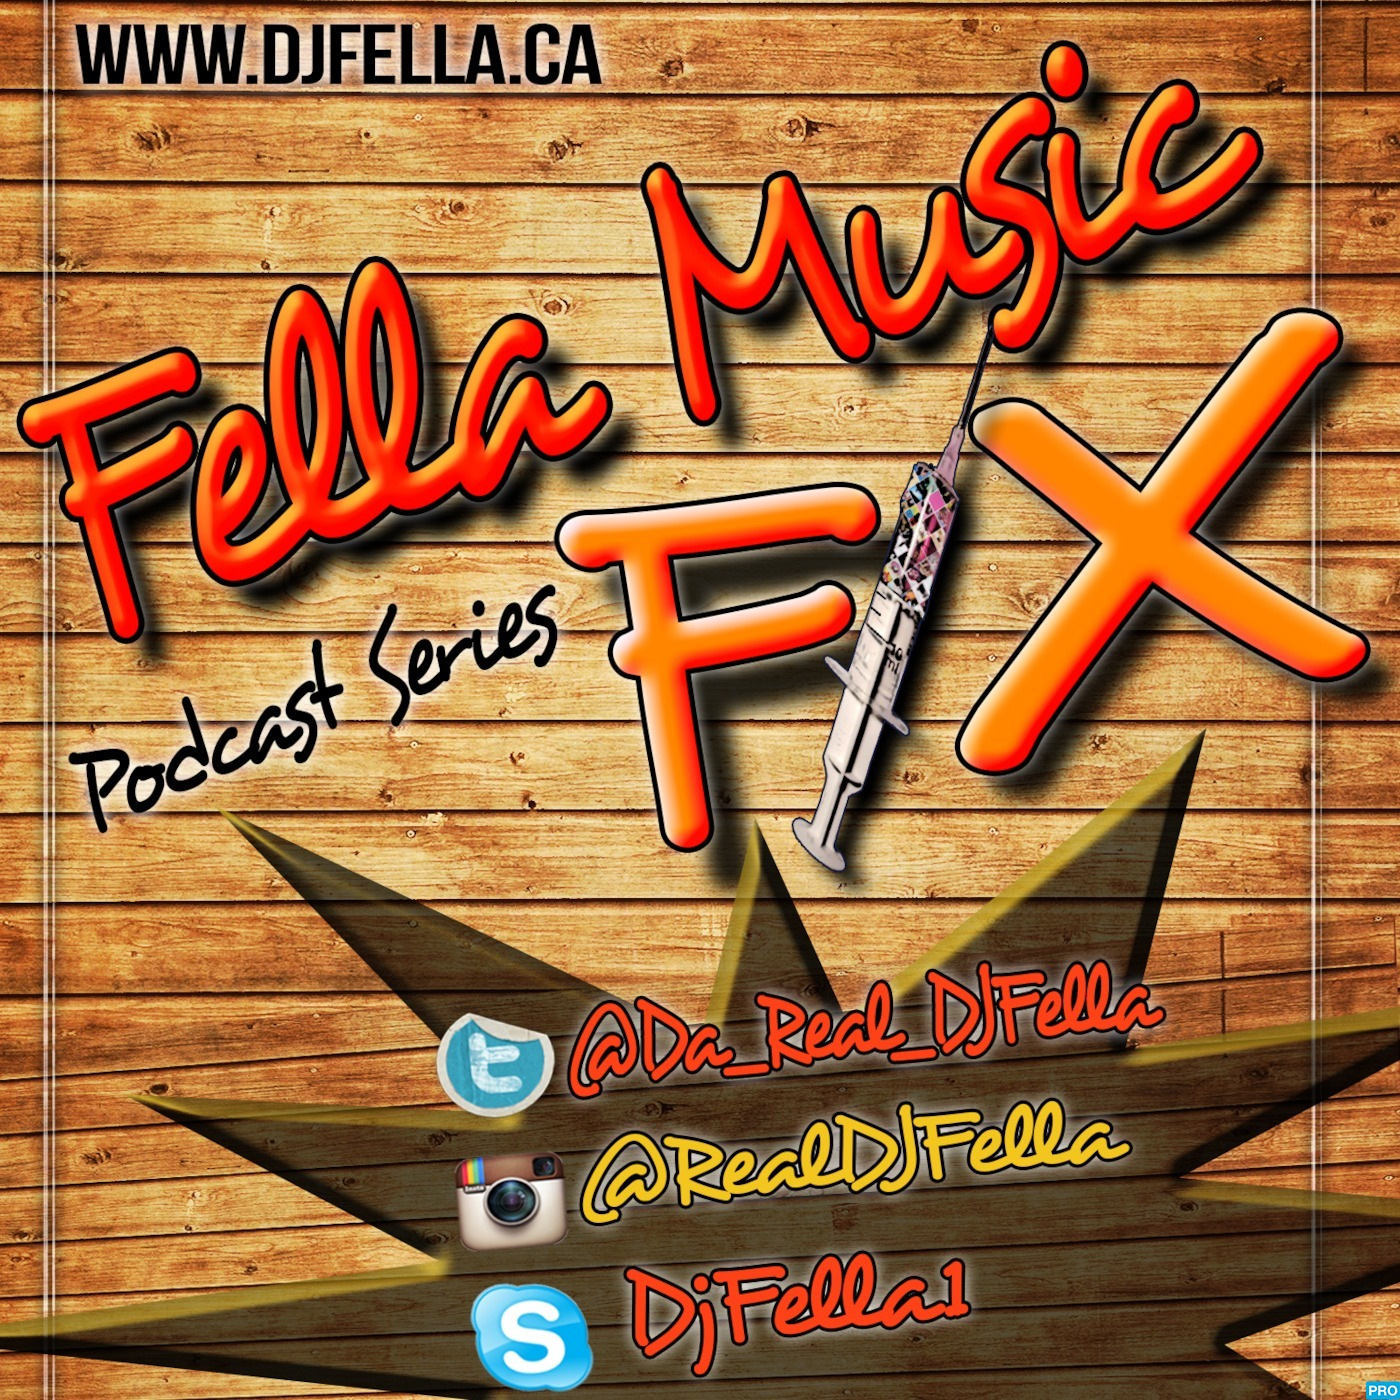 Dj Fella's Podcast